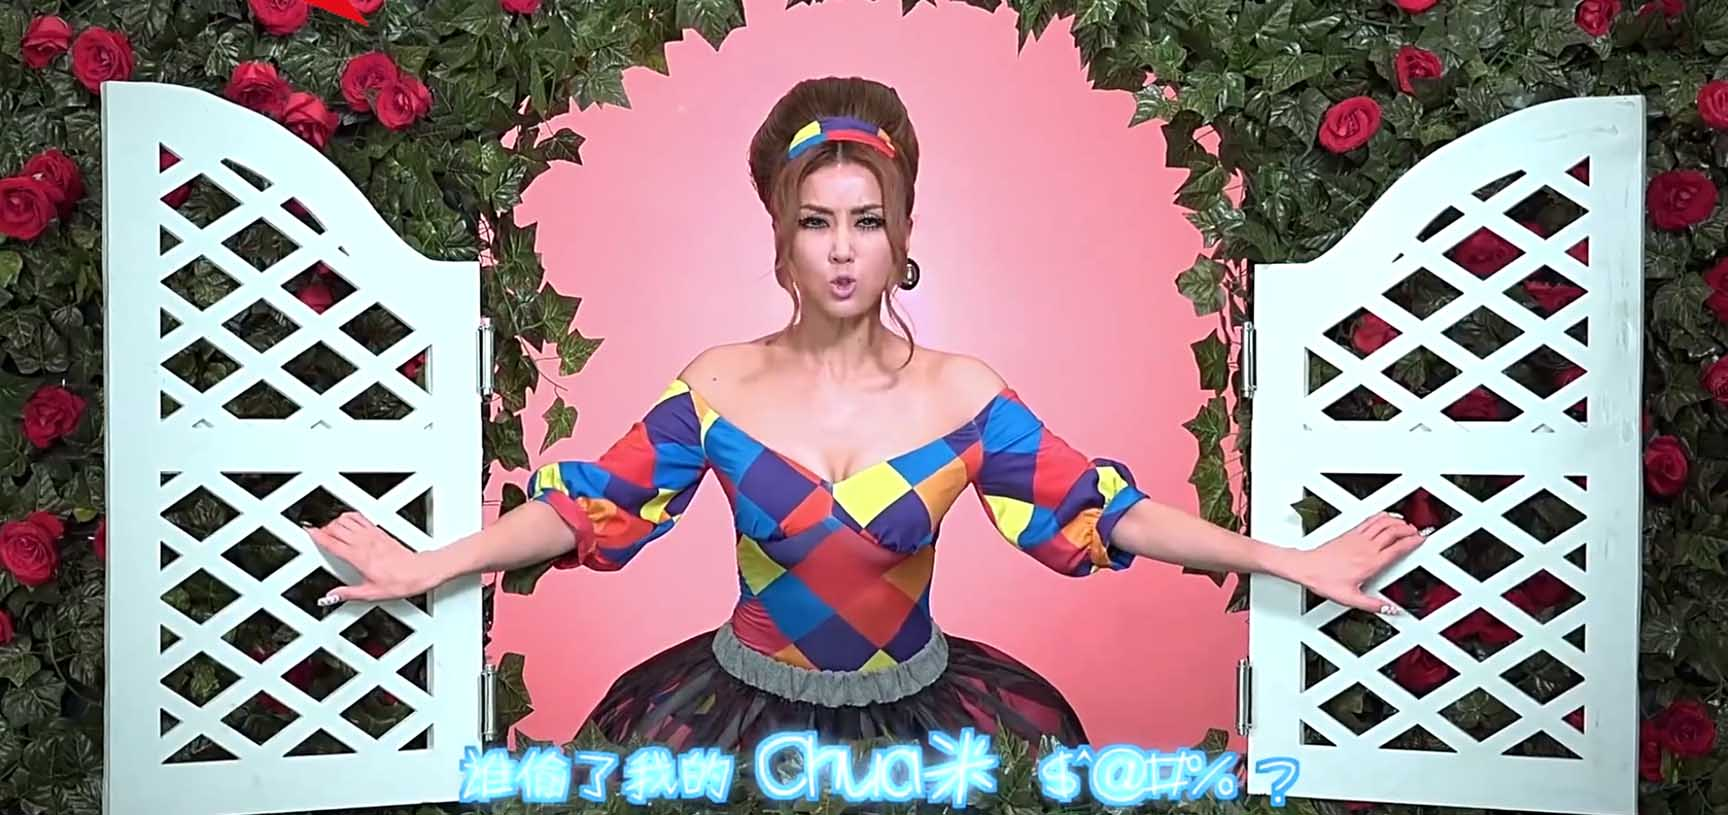 Chick Chick Chinese music video 2